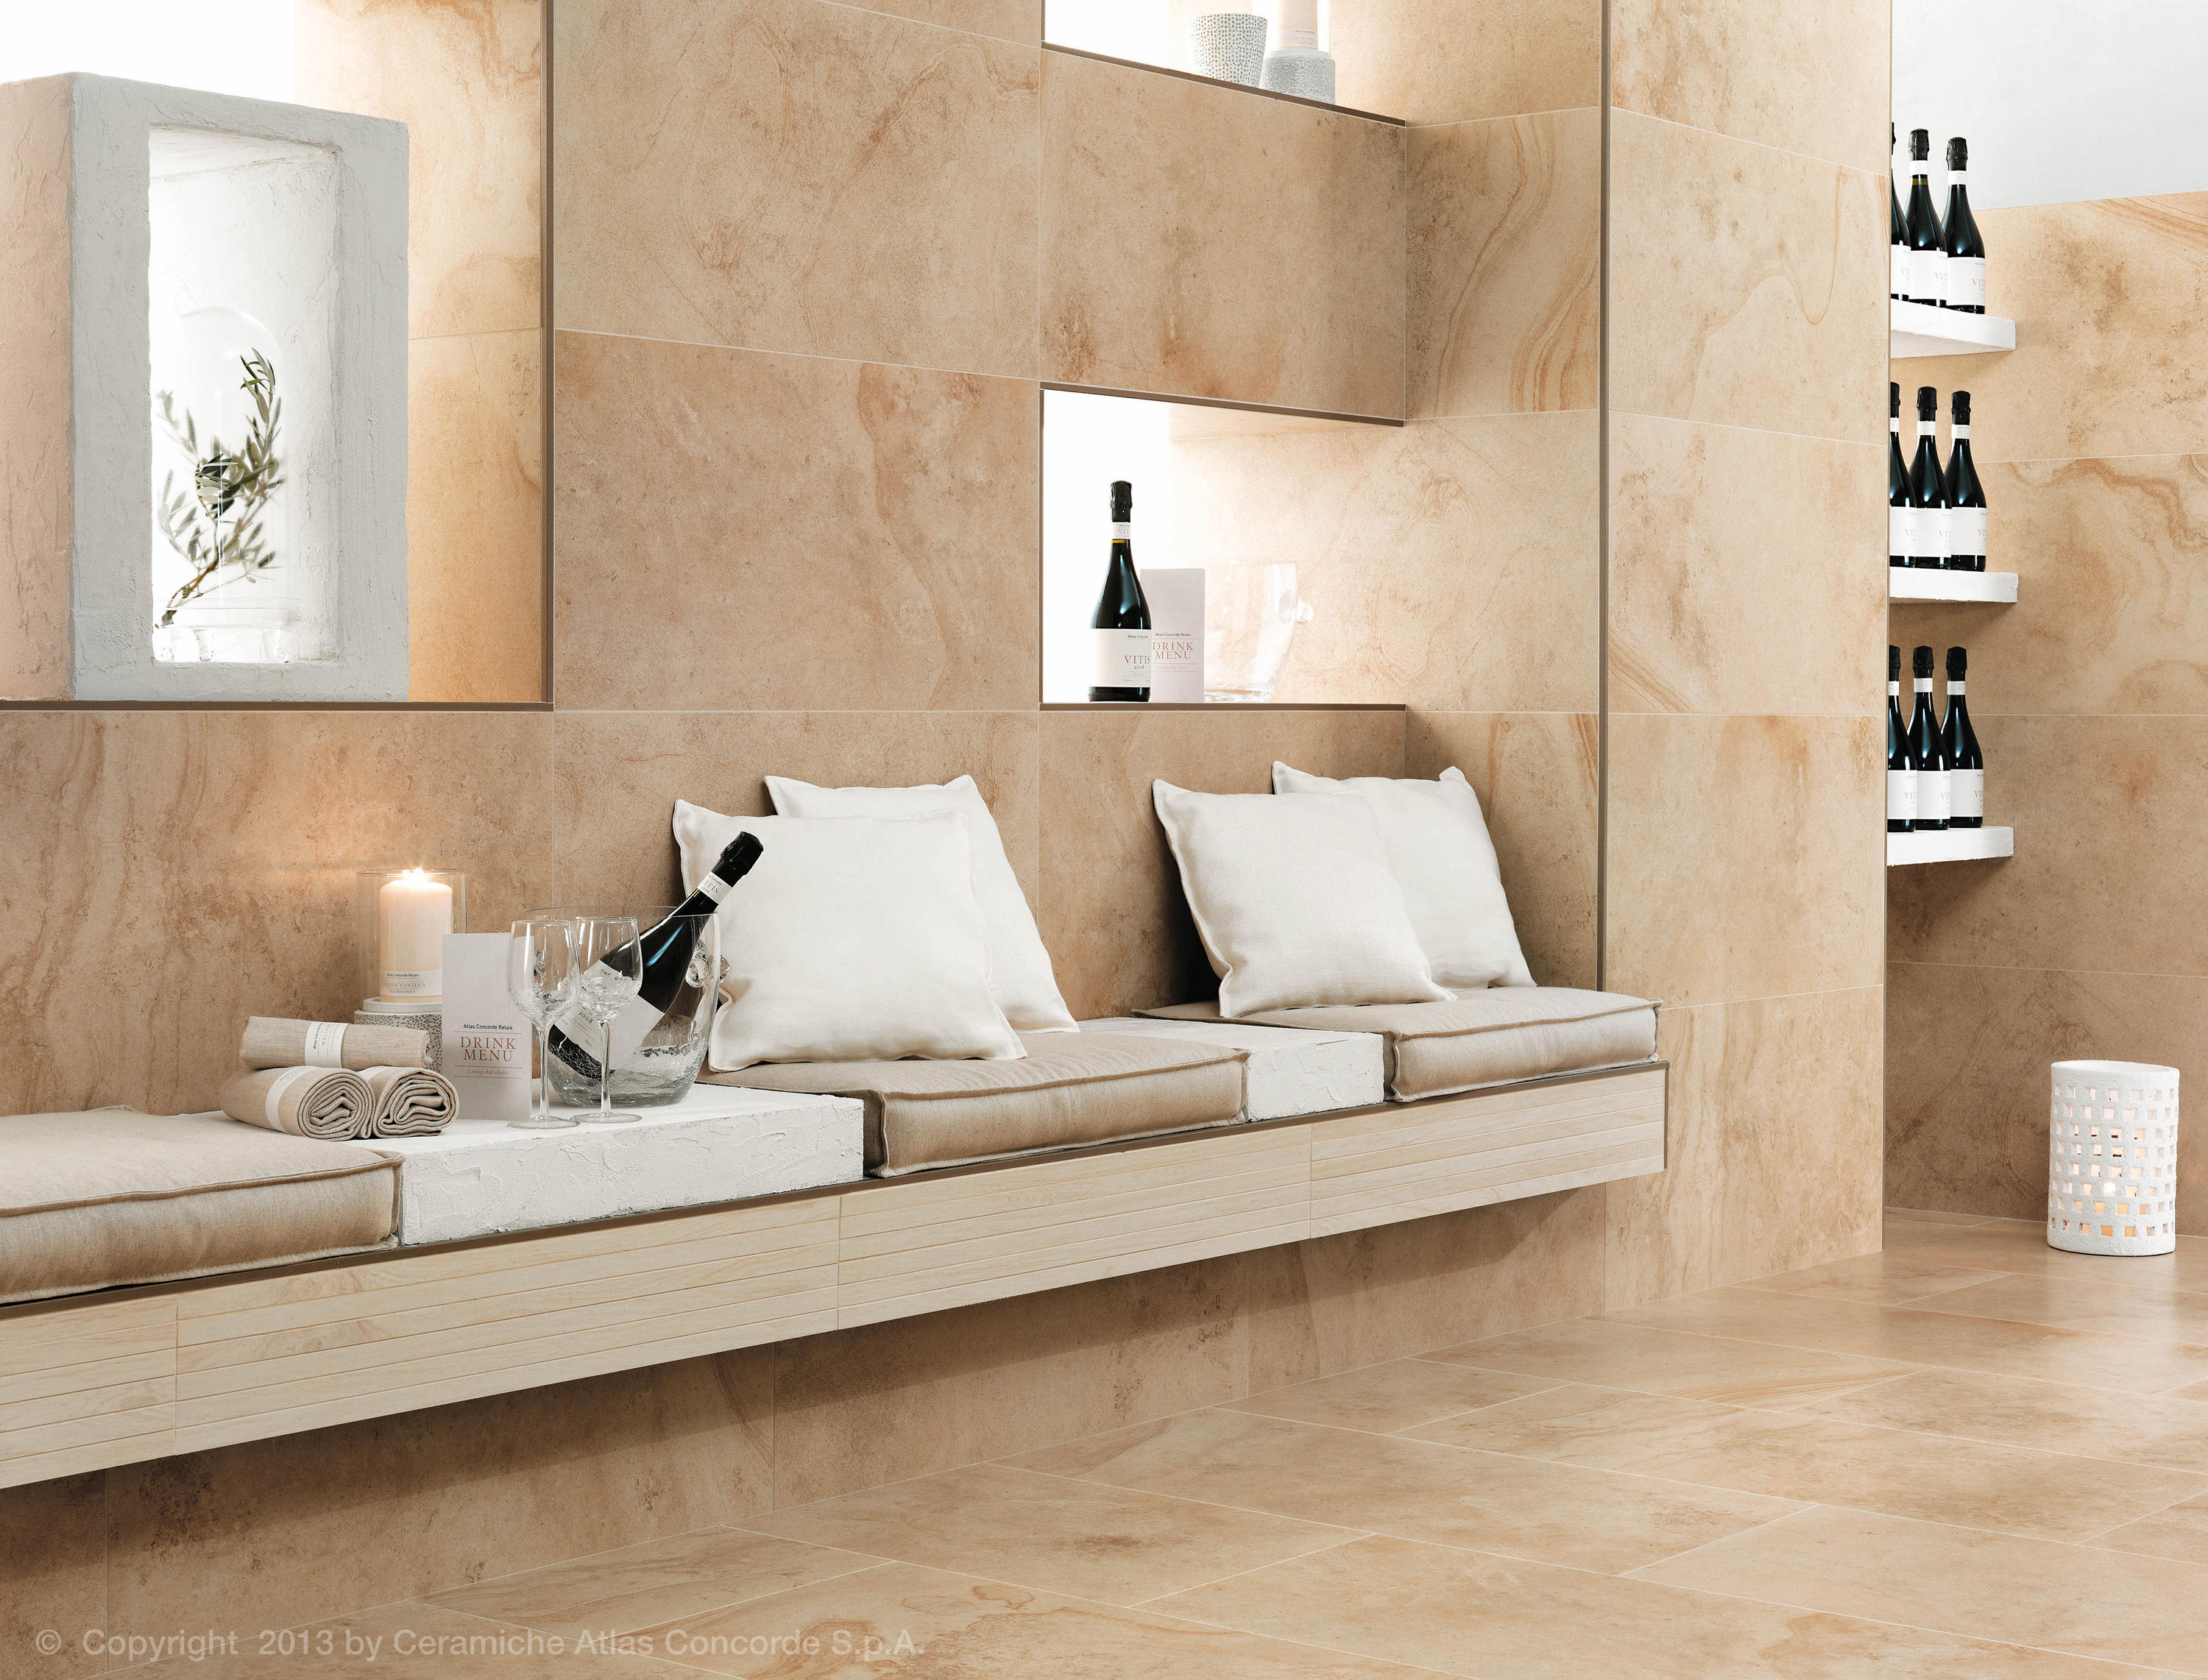 Sunrock travertino almond piastrelle ceramica atlas concorde